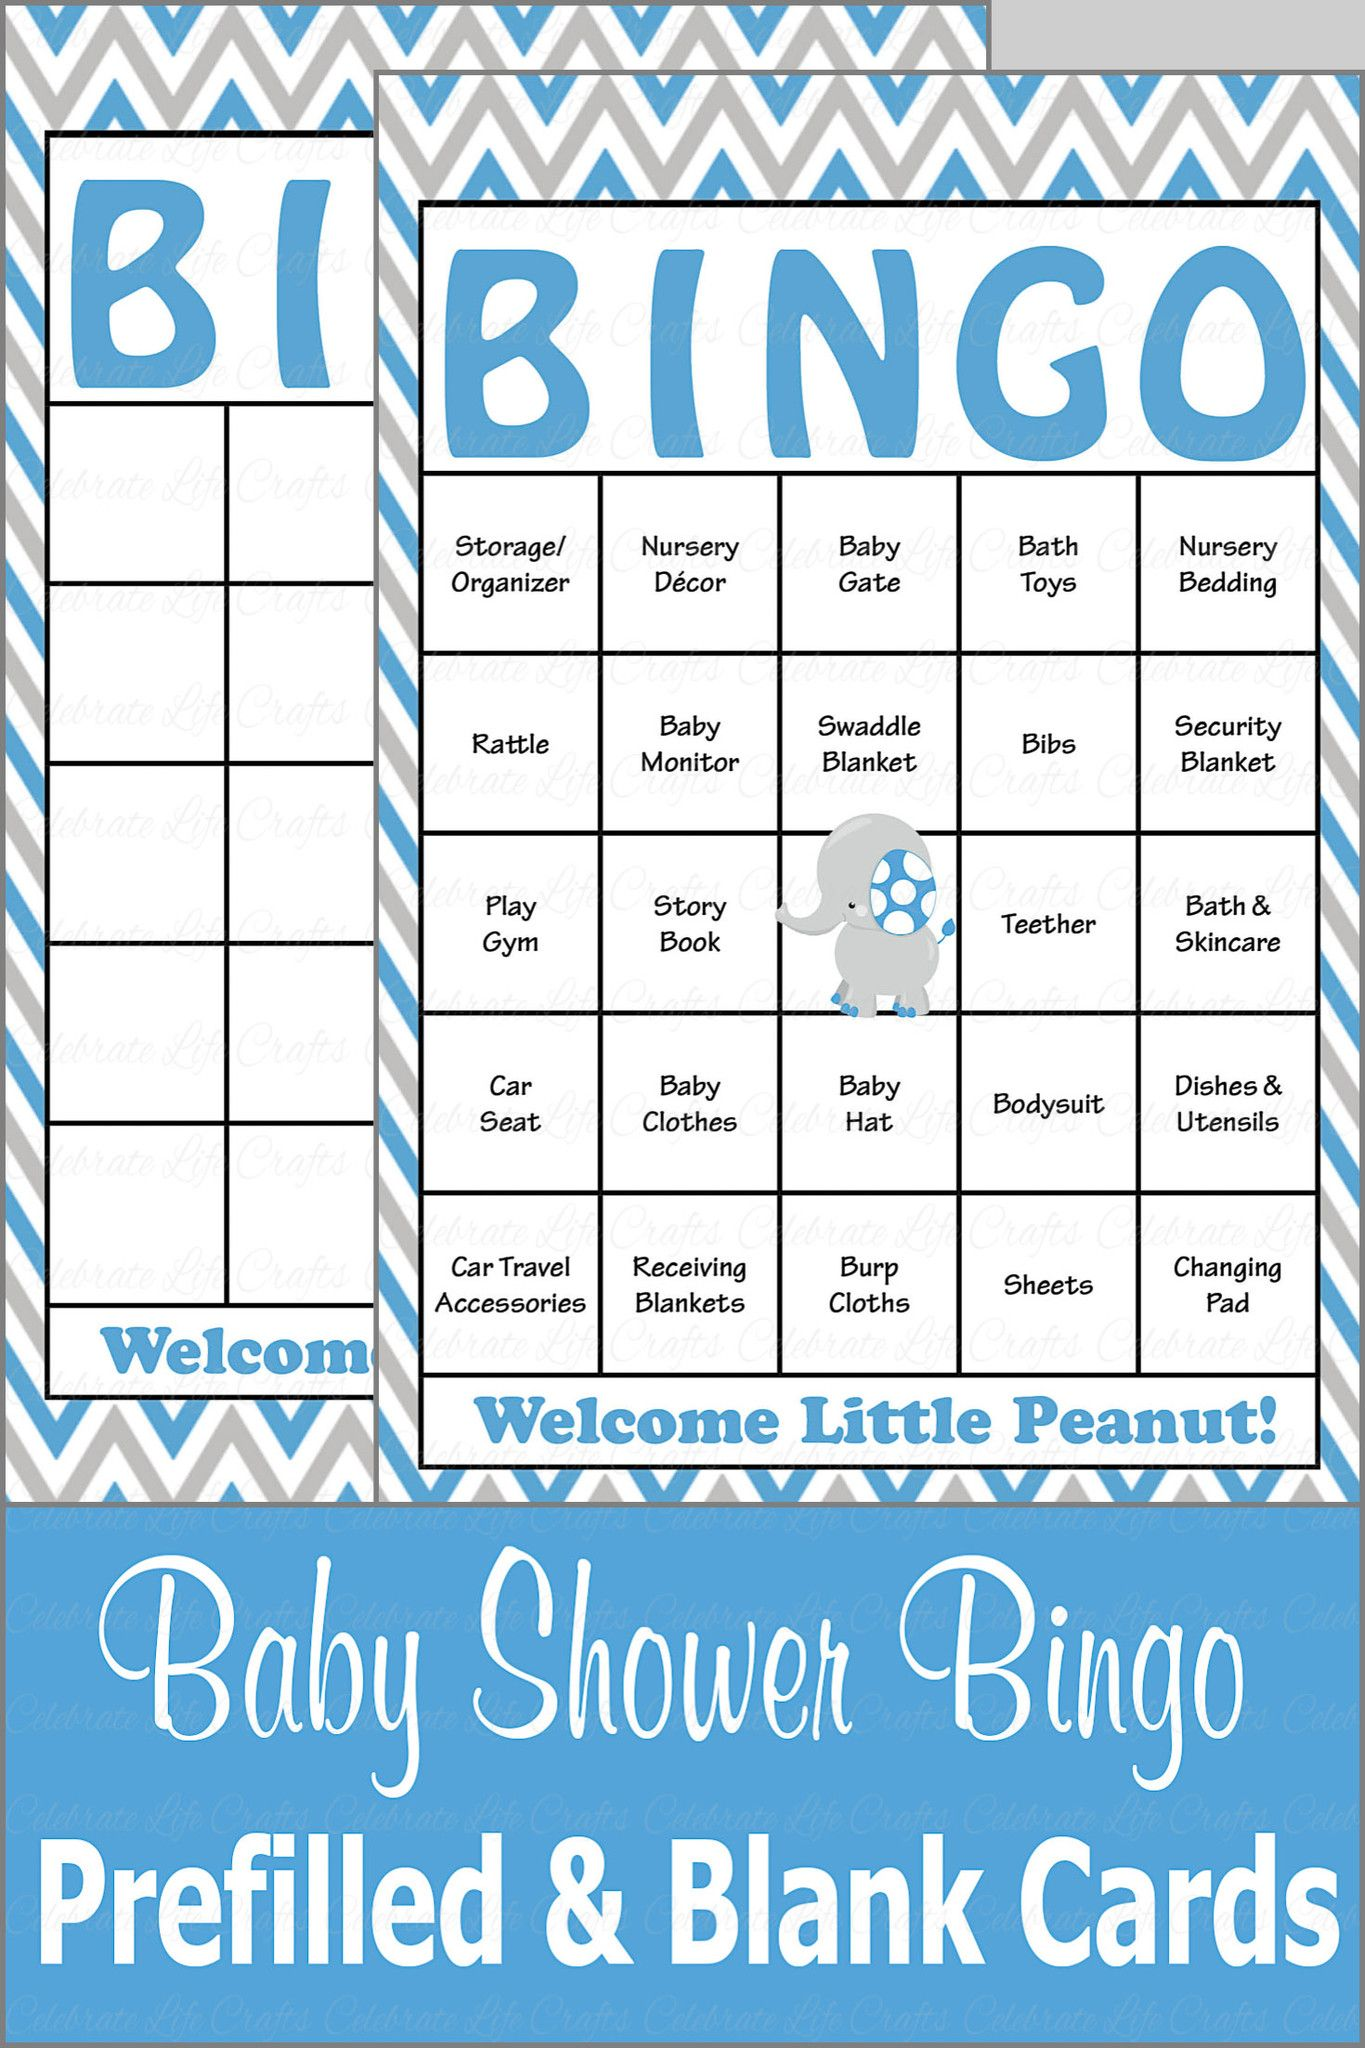 Elephant Baby Shower Baby Bingo Cards Printable Download Baby Shower Game For Boy Blue Gray B3004 Baby Shower Baby Shower Bingo Baby Shower Games